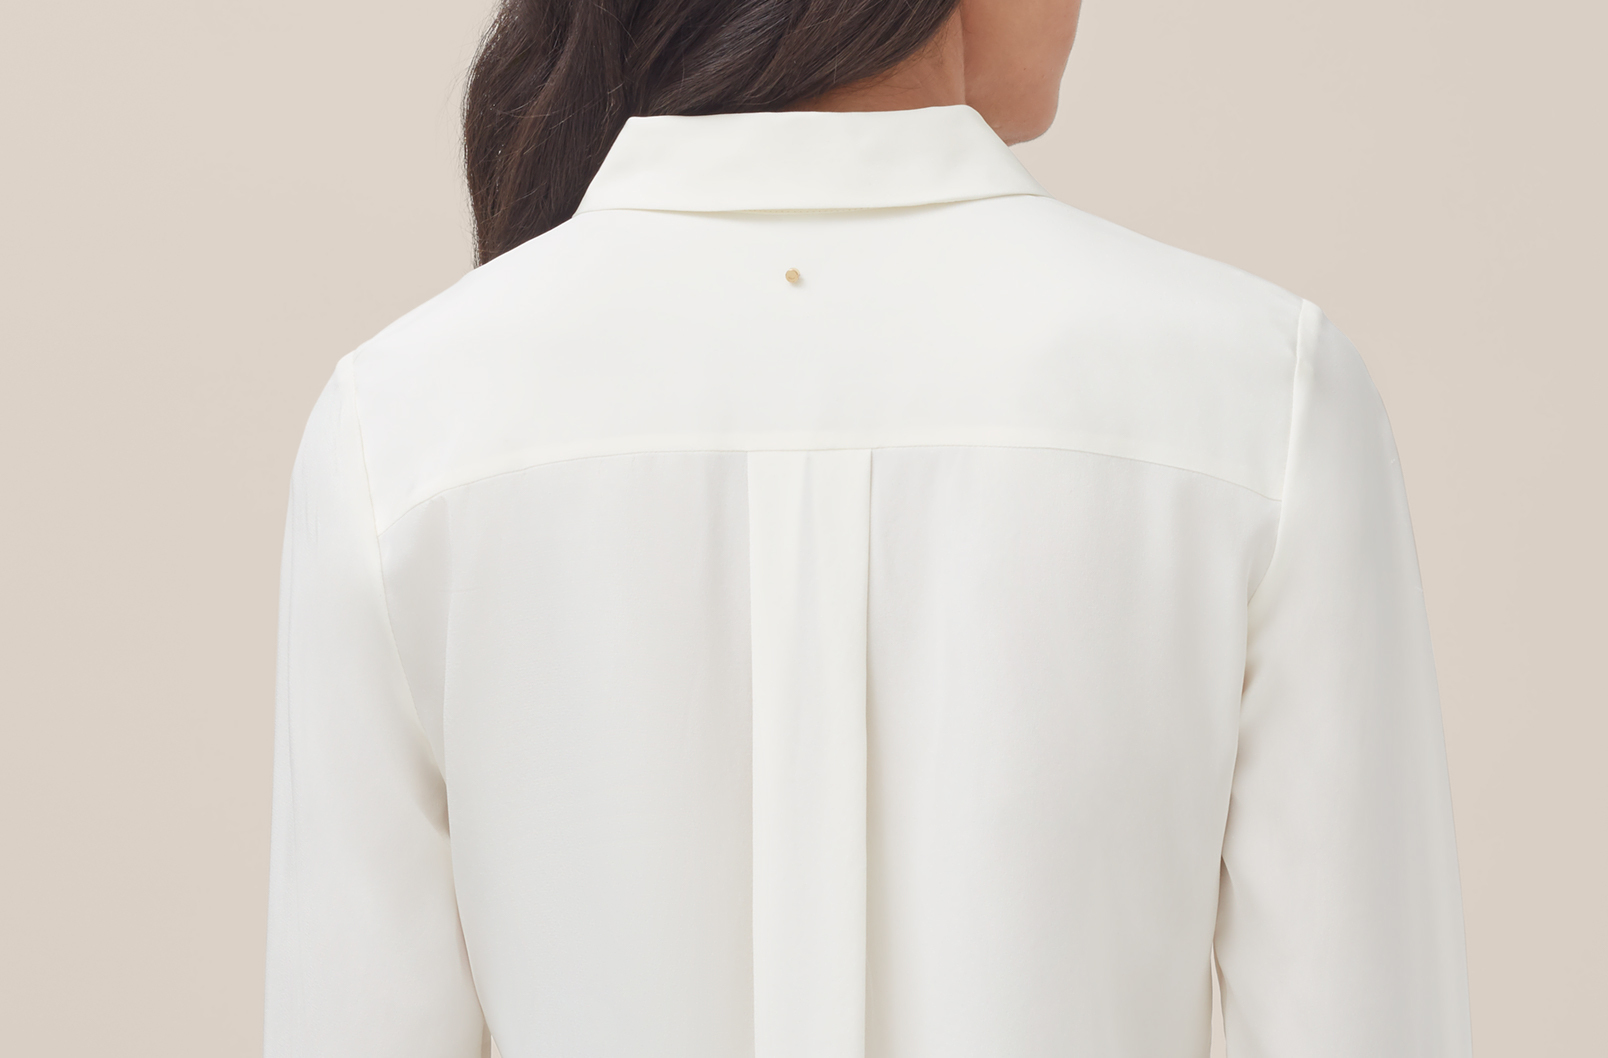 Detail image of back yoke of Silk Button Down Shirt